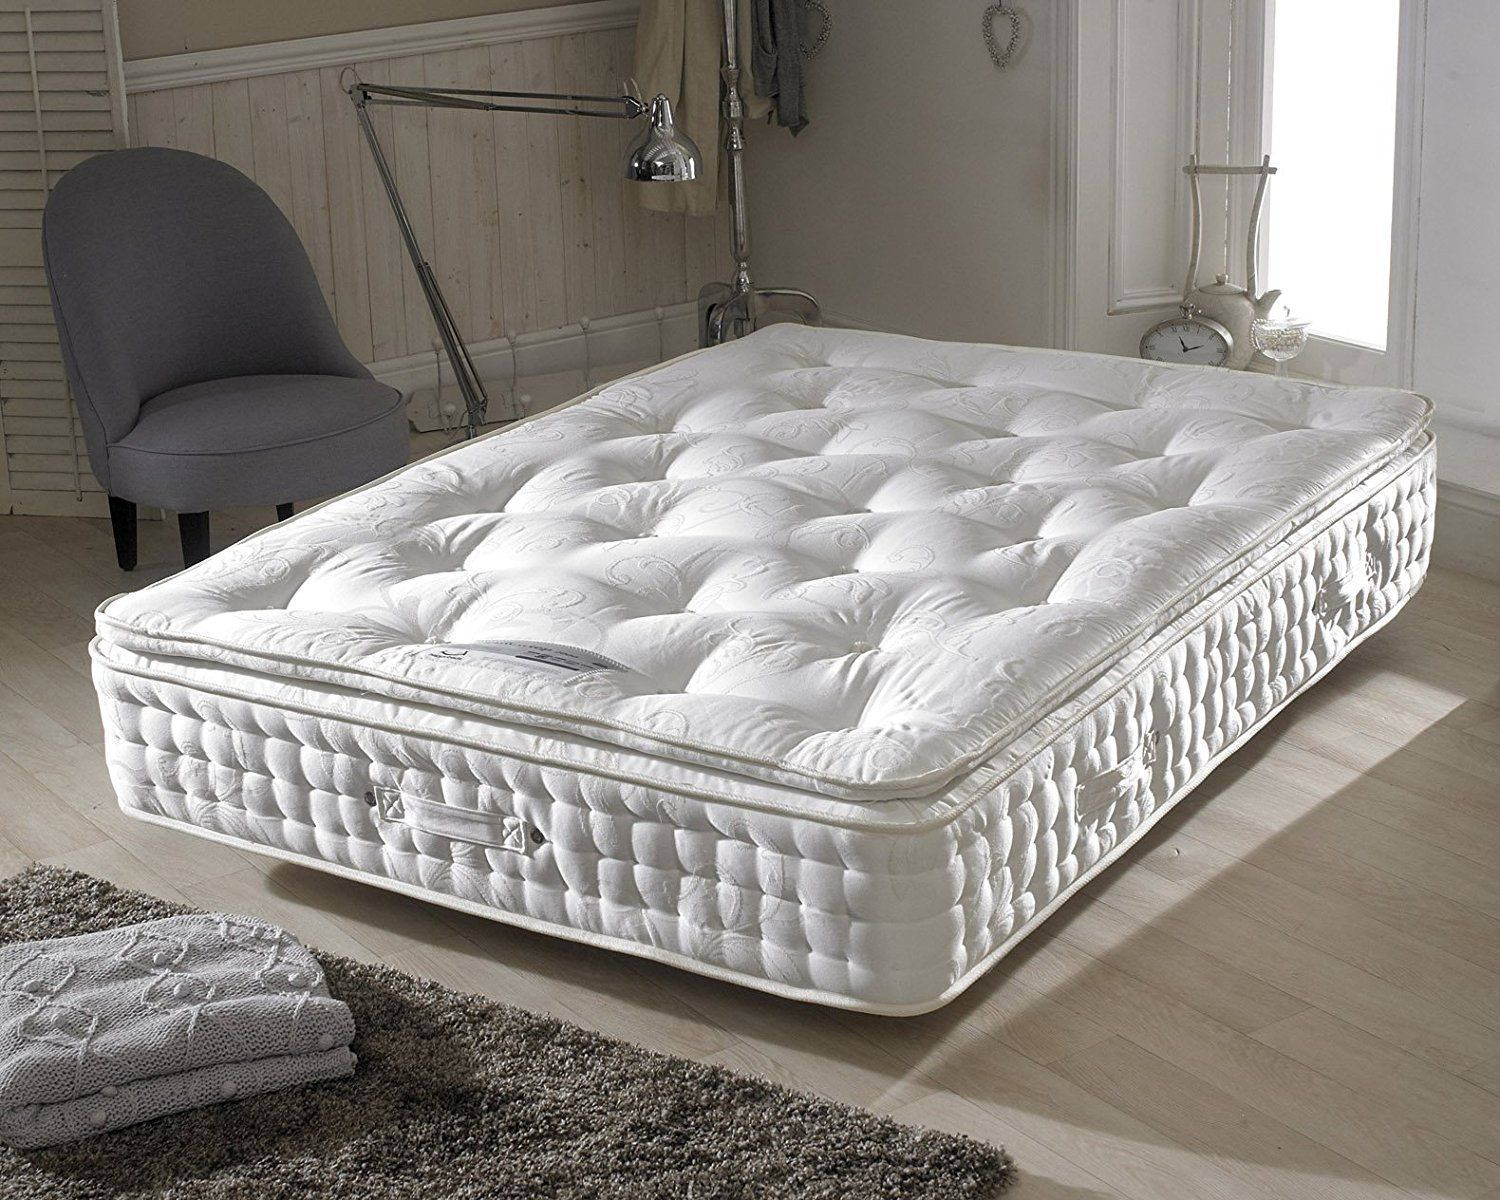 ideas with images pillow king top mattress ravishing size